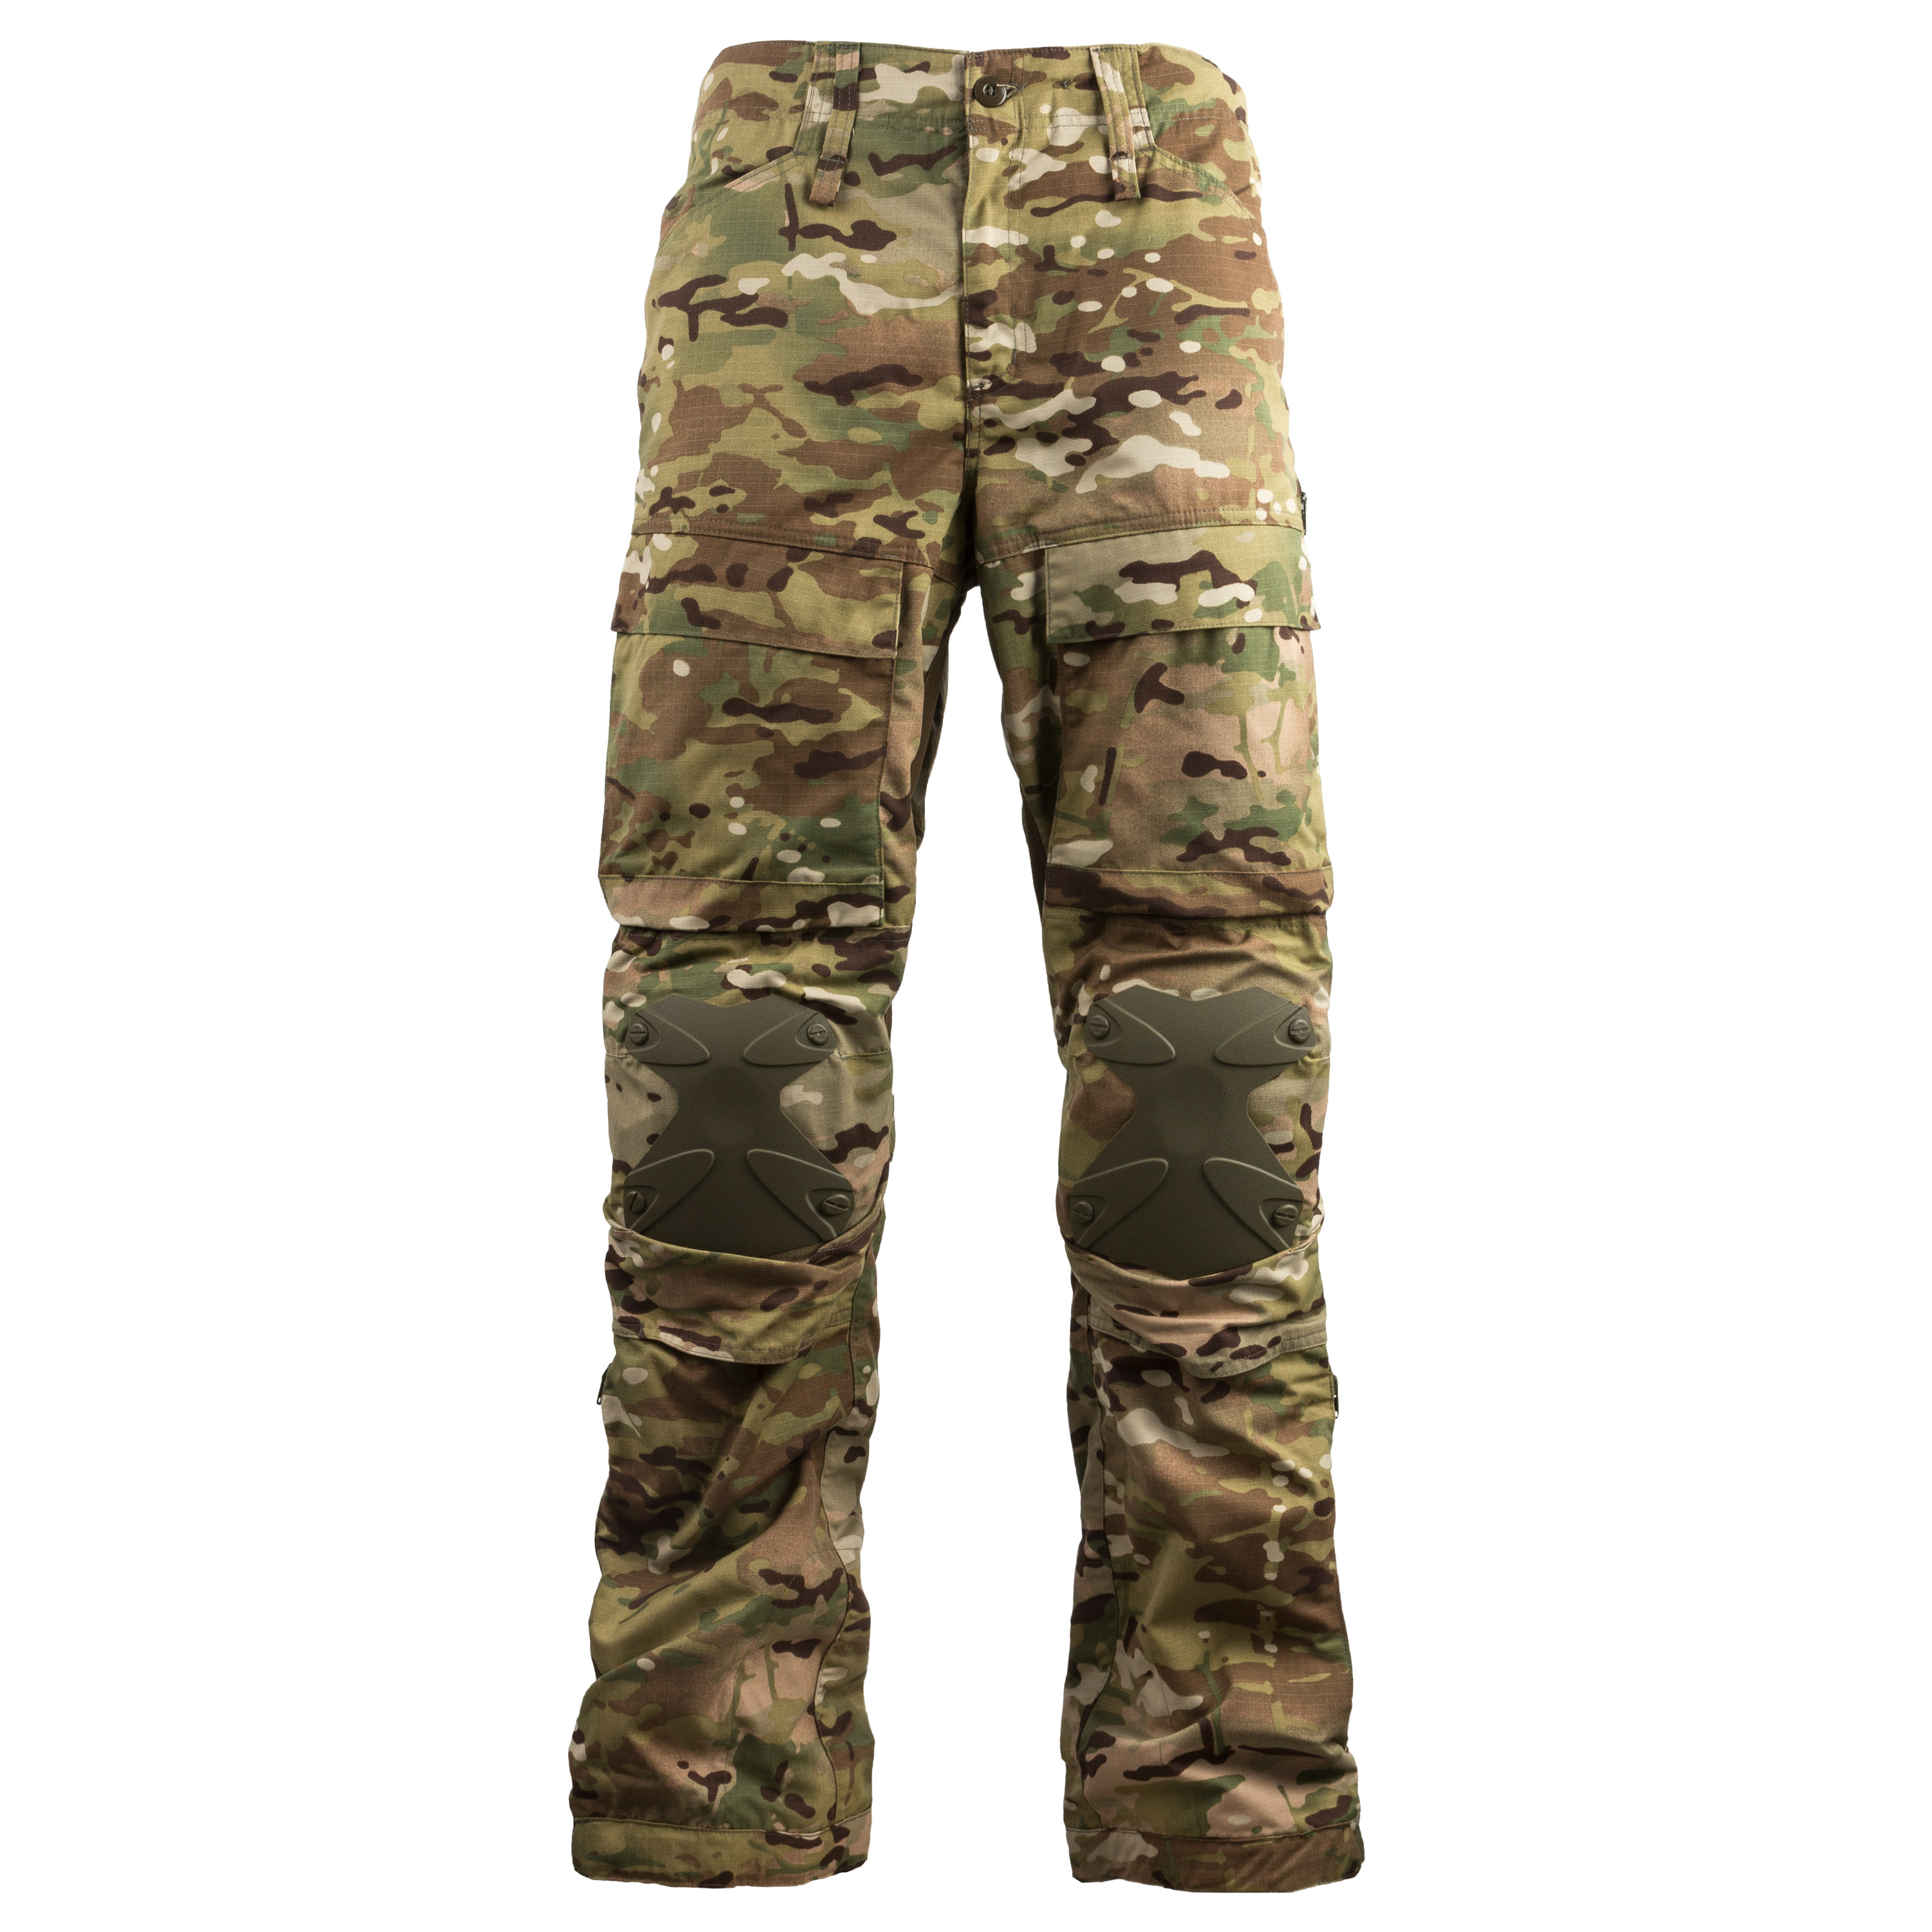 Leo Köhler Pants Defender 2.0 multicam